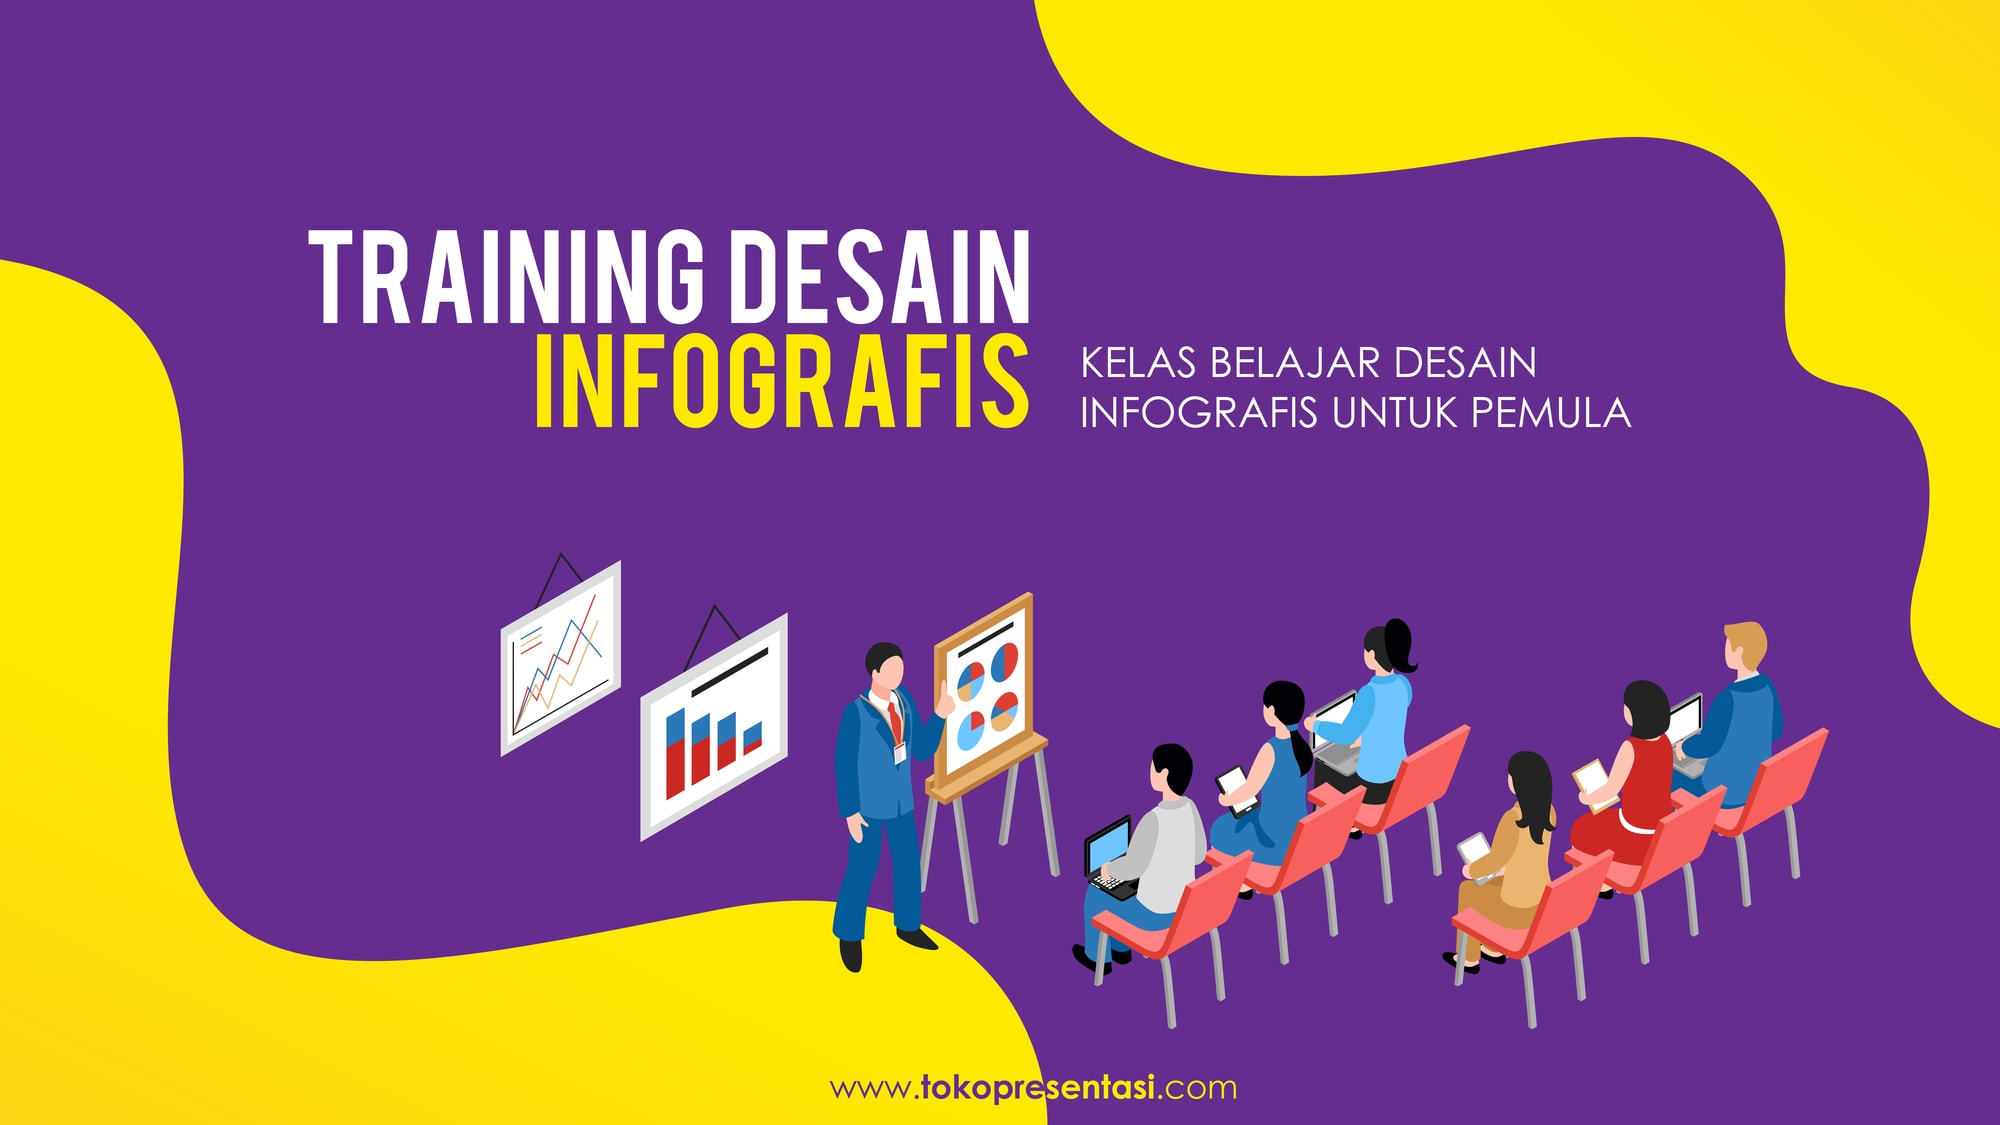 Pelatihan Training Desain Infografis PPT Corporate University PLN Tokopresentasi